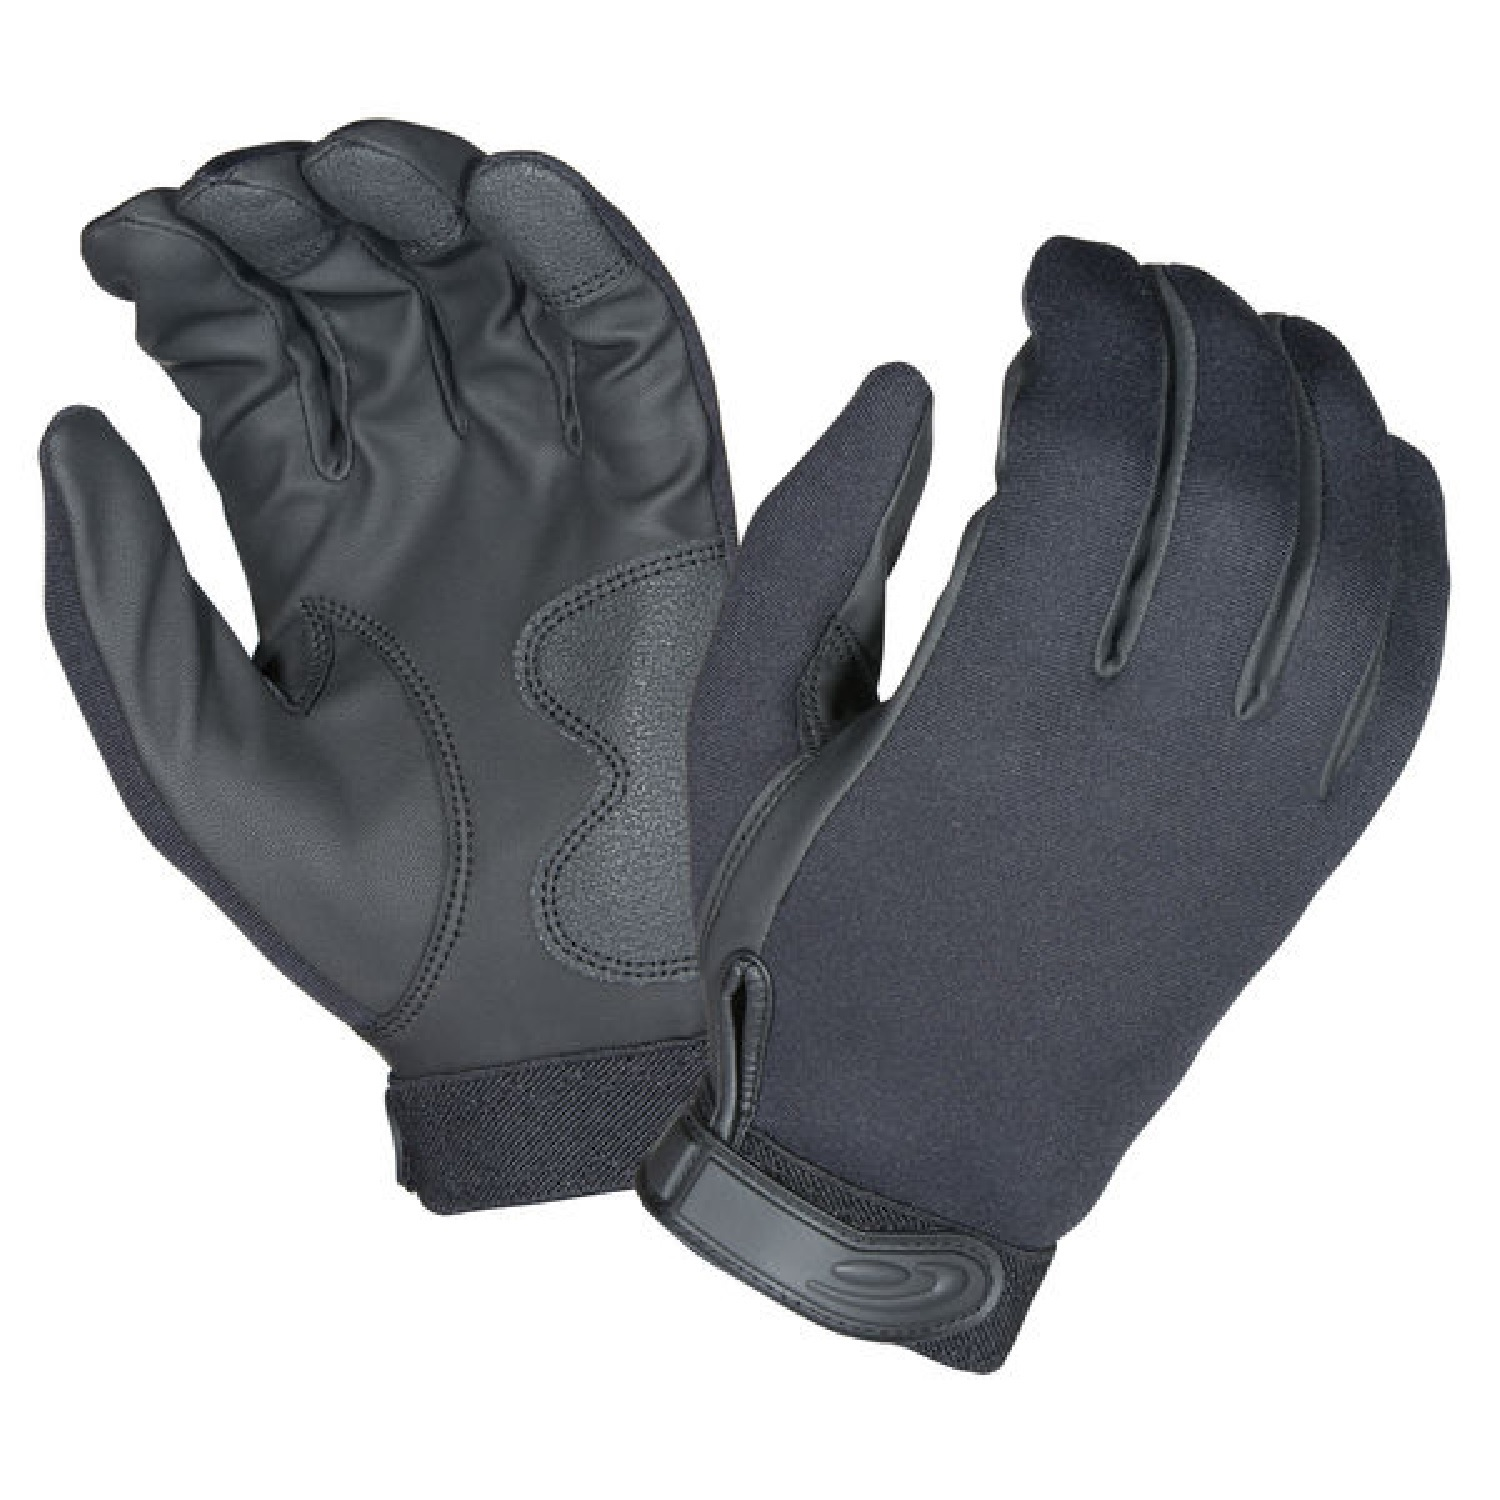 Hatch NS430 Specialist Glove Size XL